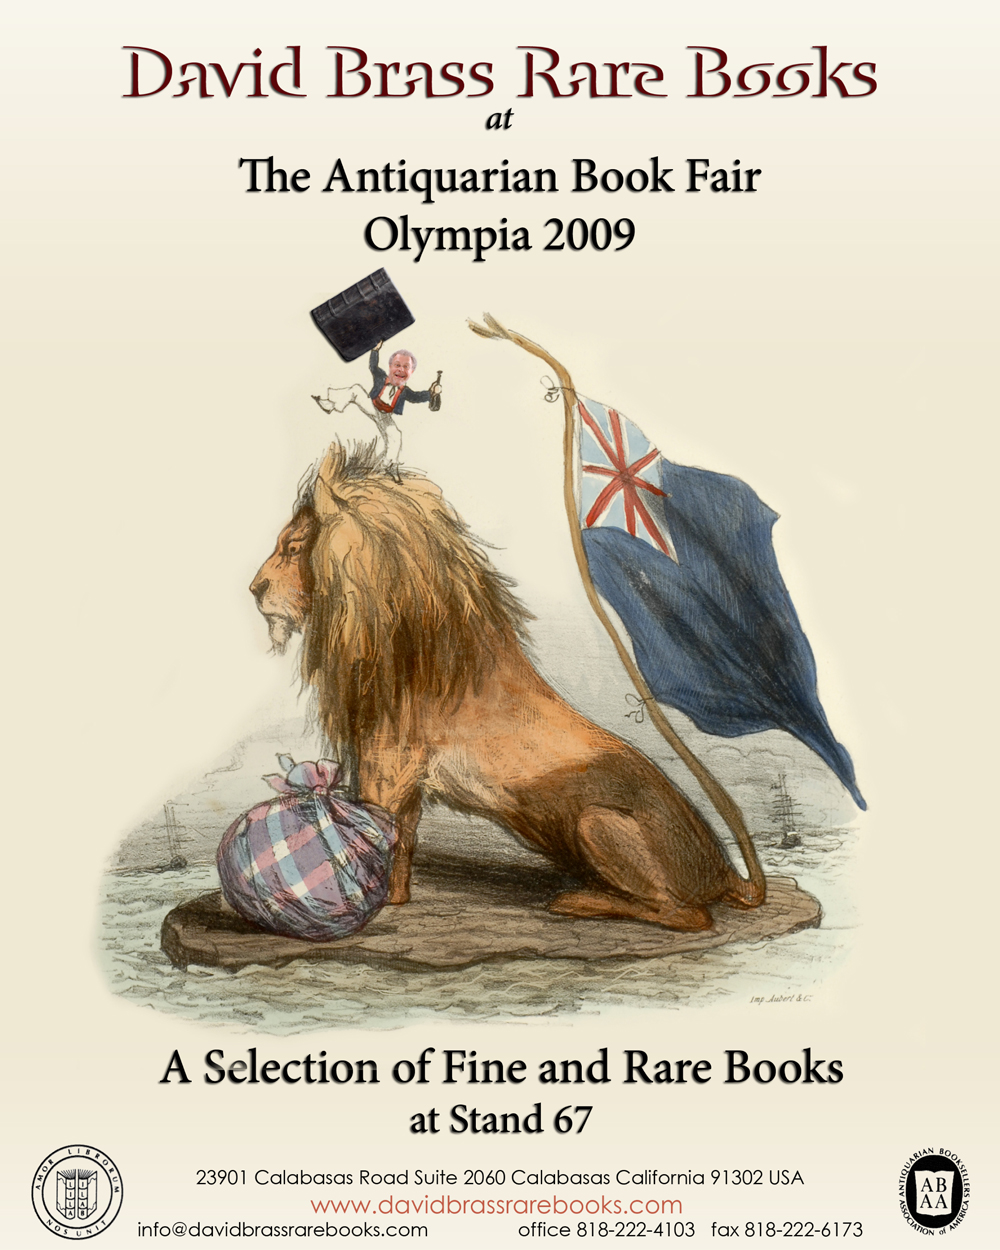 2009 London Antiquarian Book Fair